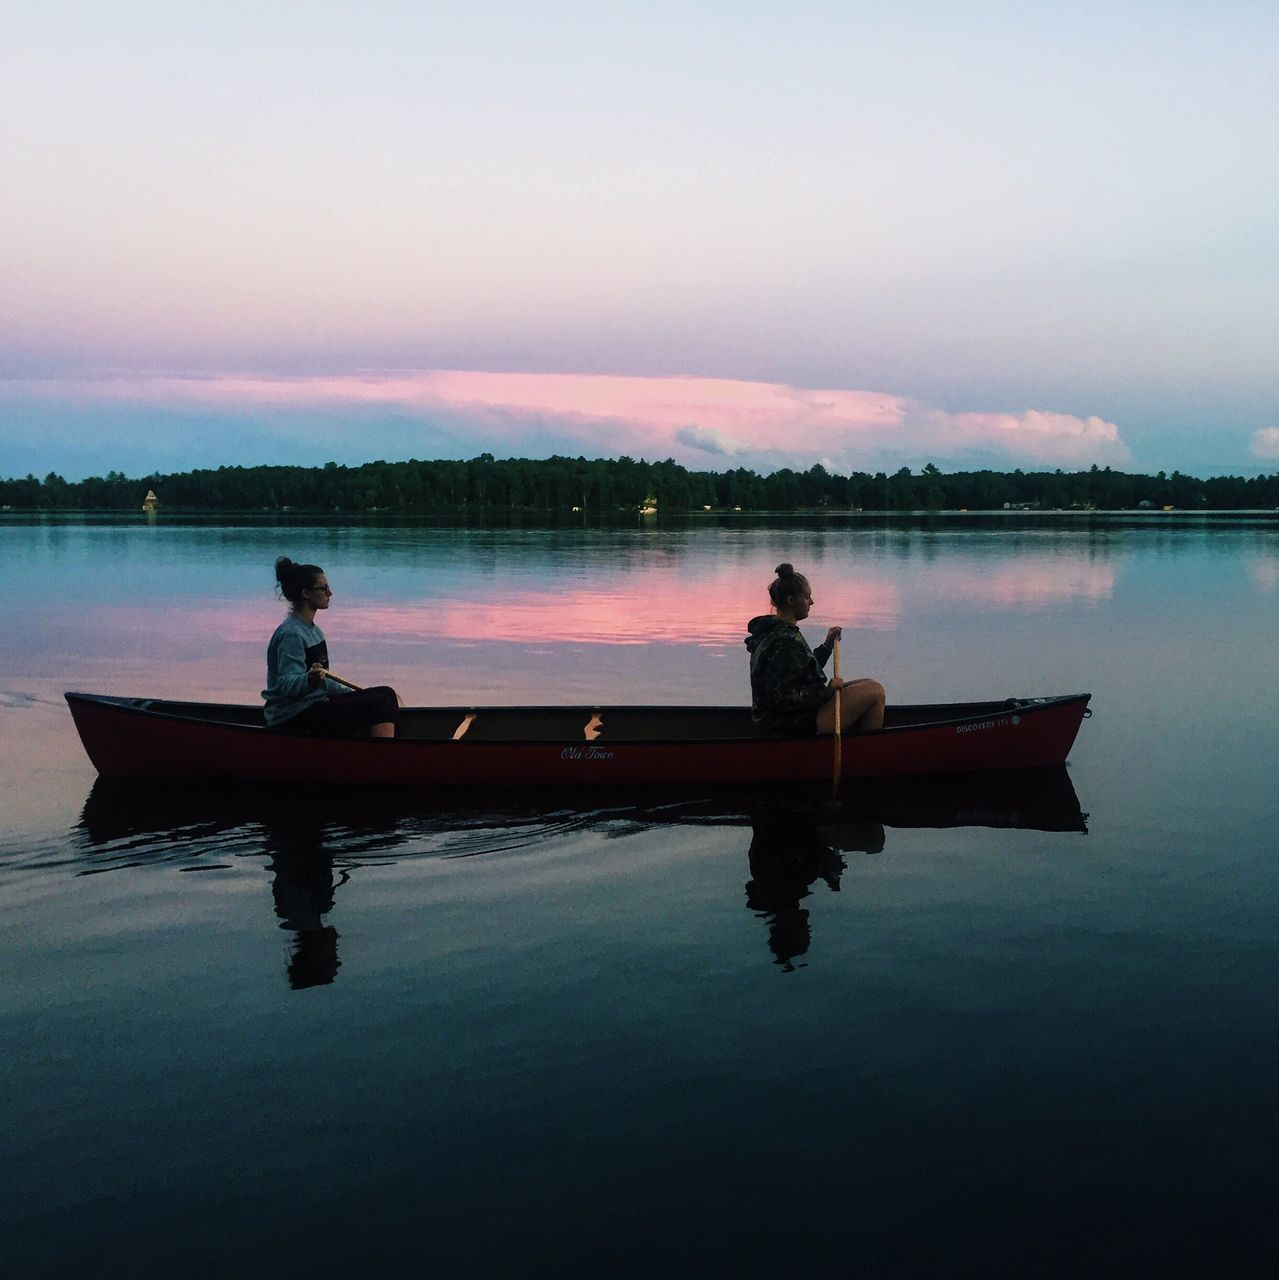 reflection, water, sunset, nature, men, real people, two people, togetherness, full length, silhouette, leisure activity, lake, beauty in nature, sky, waterfront, tranquility, sitting, outdoors, nautical vessel, scenics, lifestyles, women, rowing, oar, day, people